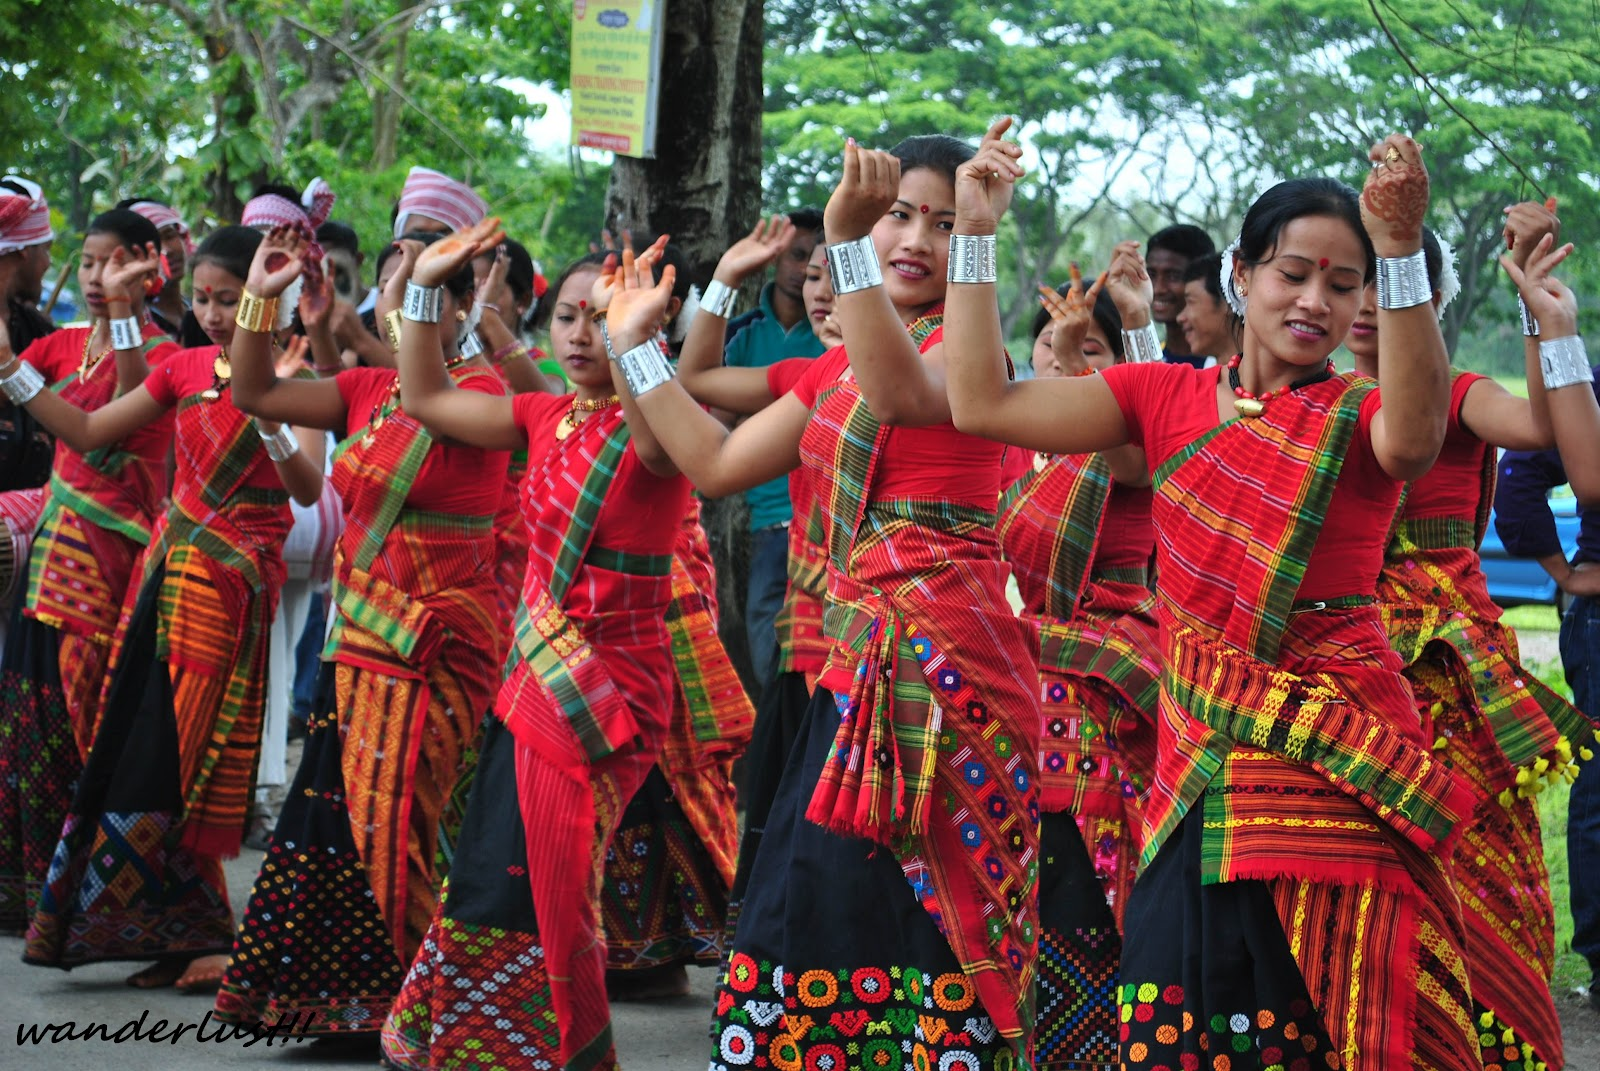 essay on bihu festival of assam Festivals of north east india are colorful and full of cultural delight assam: tea festival - the tea festival of assam is organized every year in november rongali bihu or bohag bihu celebrated during mid april is considered as the most important bihu festival.